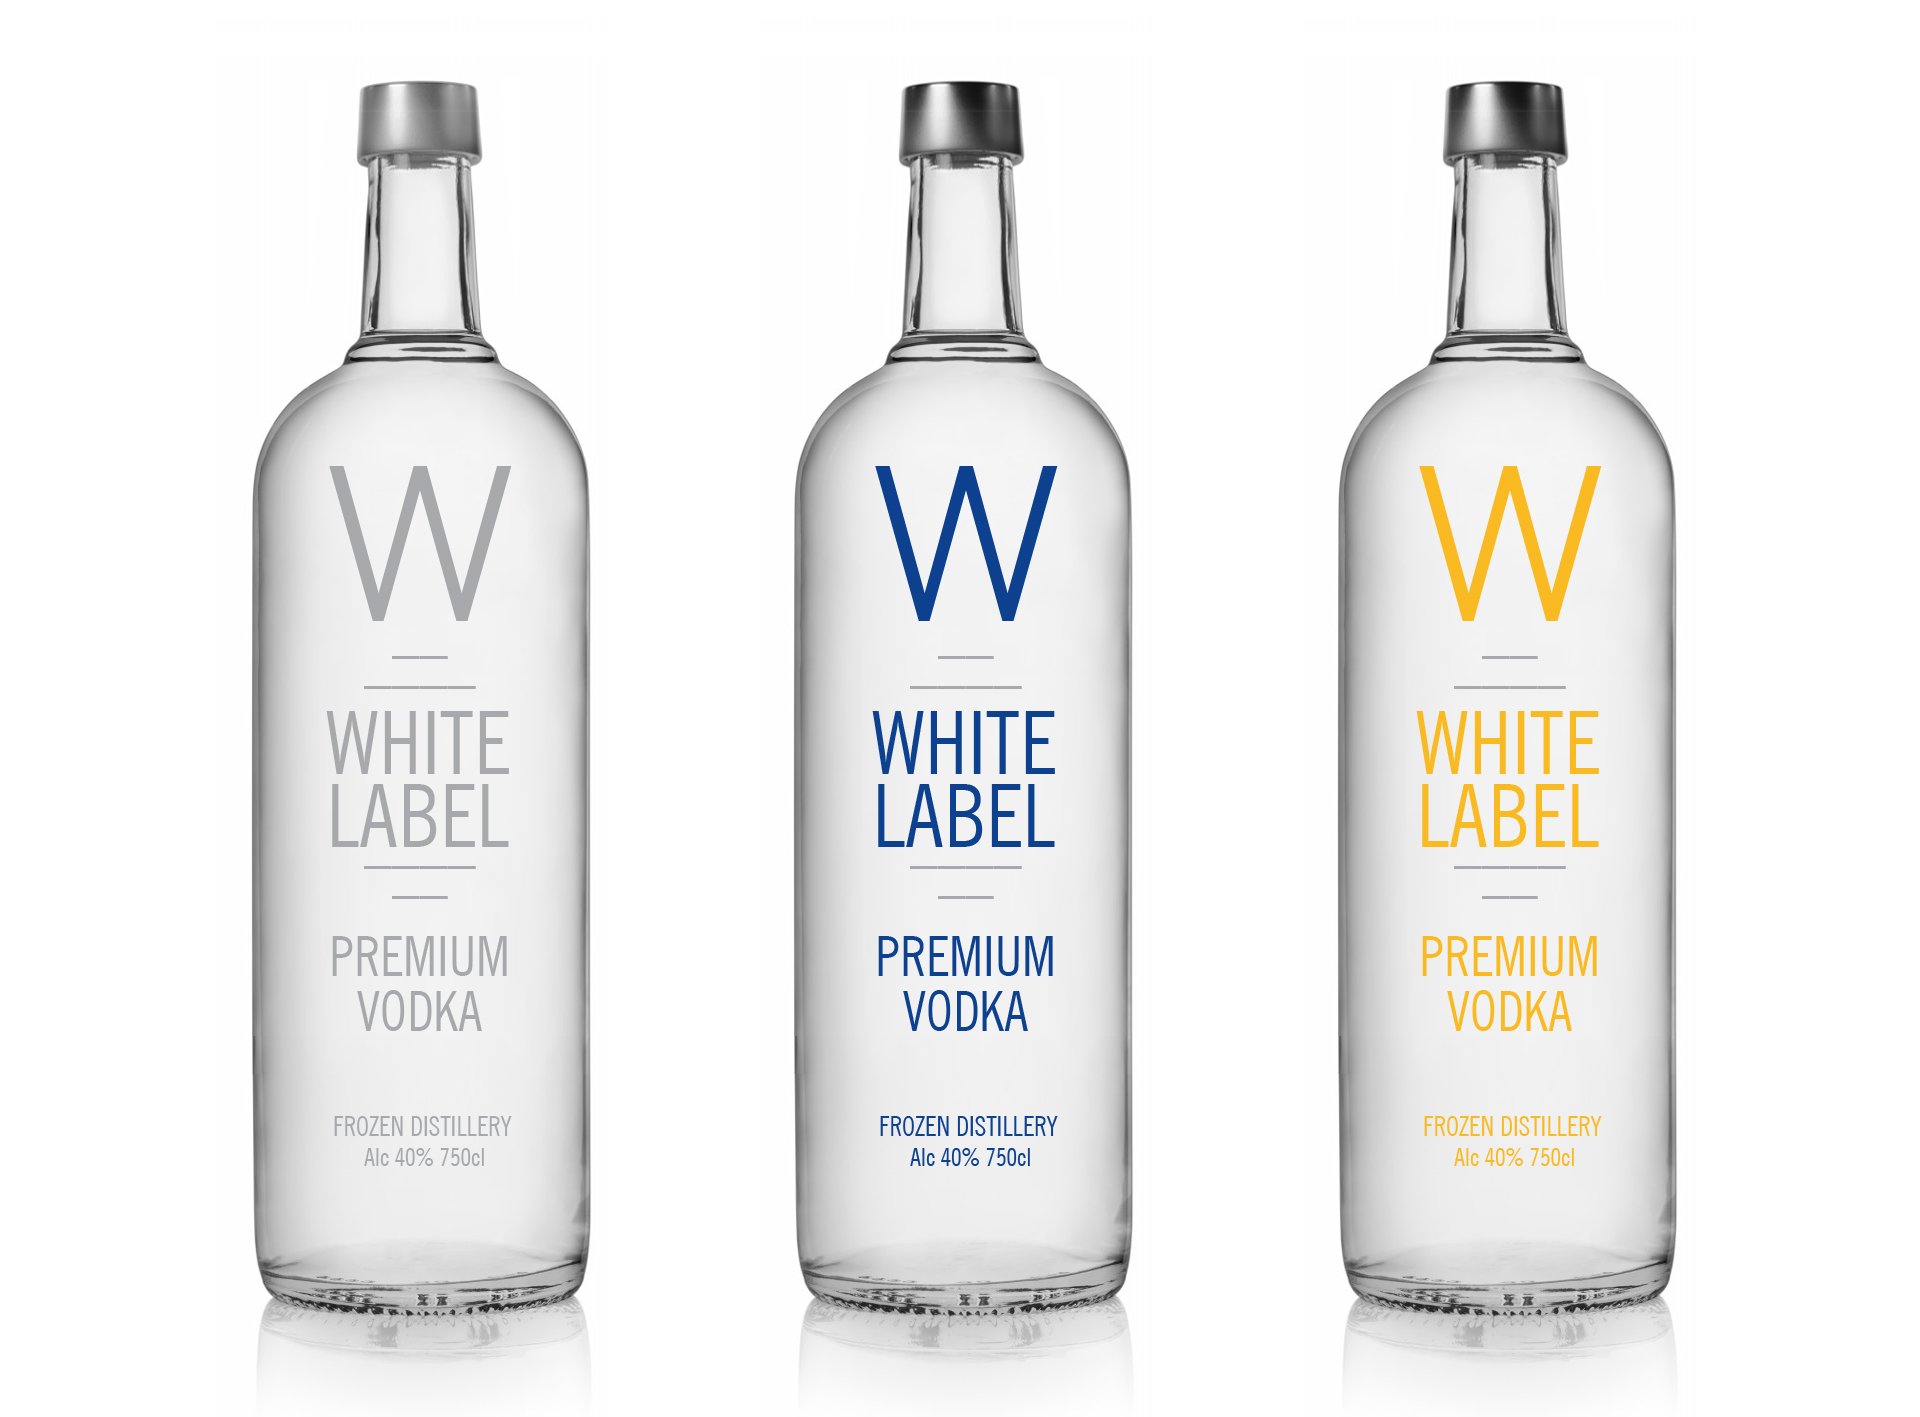 W-BRANDED-BOTTLE-PURE-VODKA-BY-GEORGE-DIMOPOULOS-008-009-010